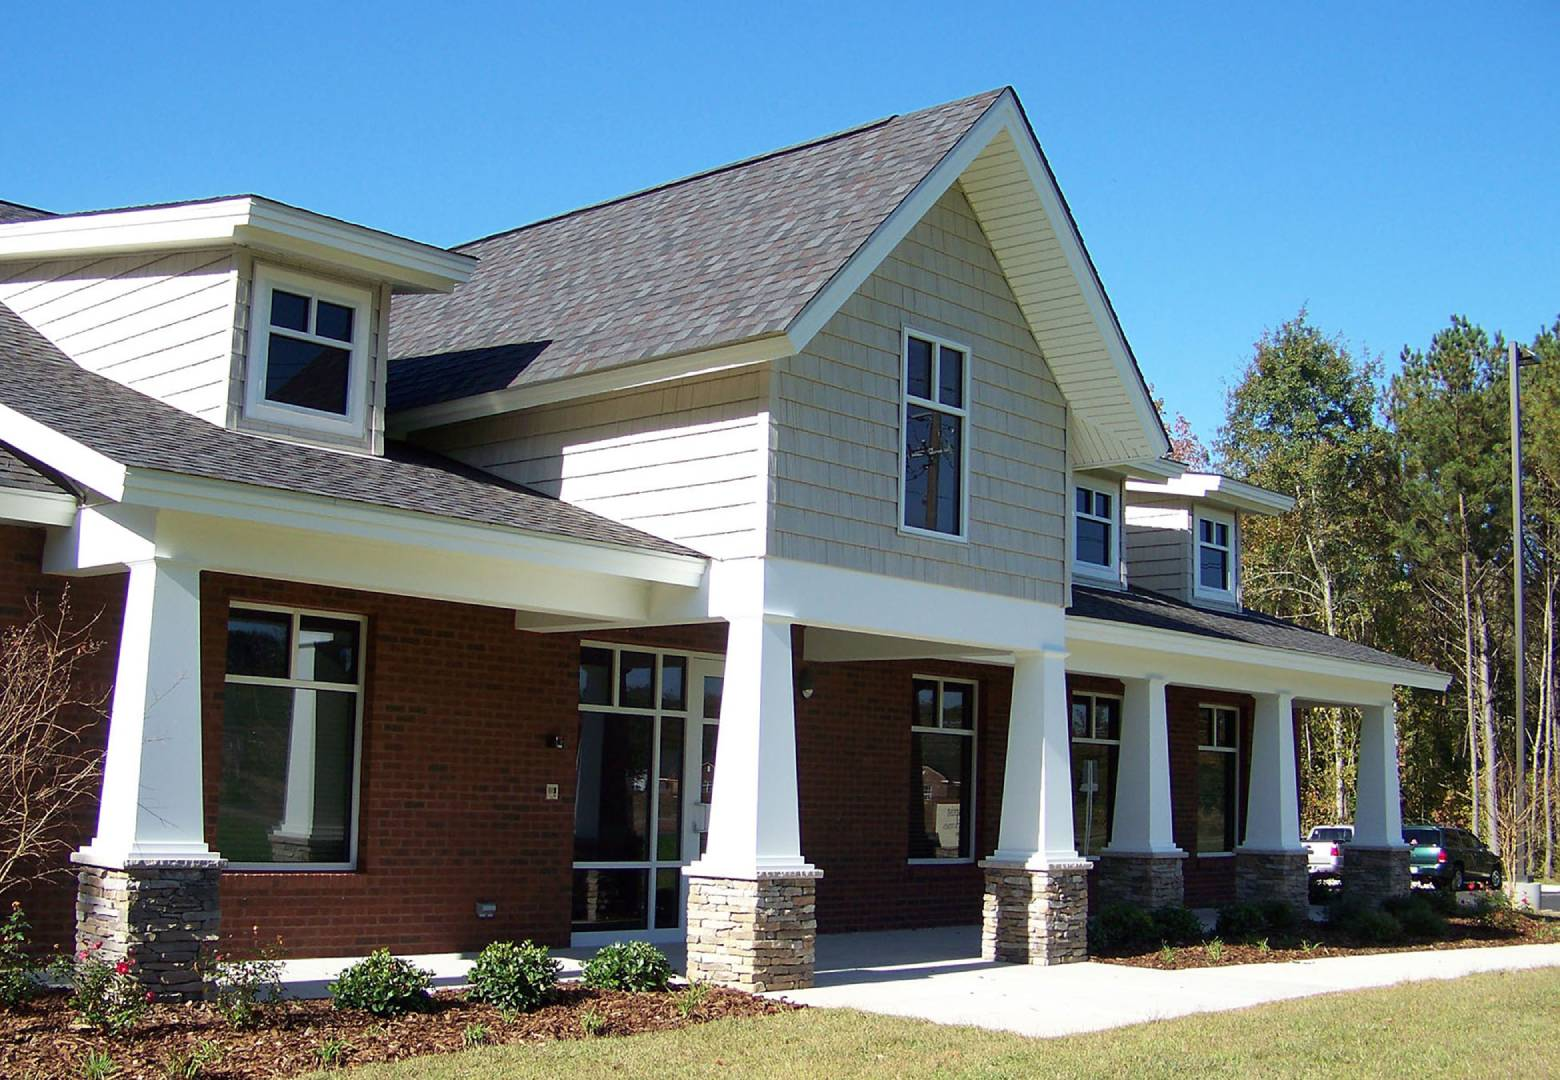 Alabama Baptist Children's Homes and Family Ministries Regional Office, Oxford, AL